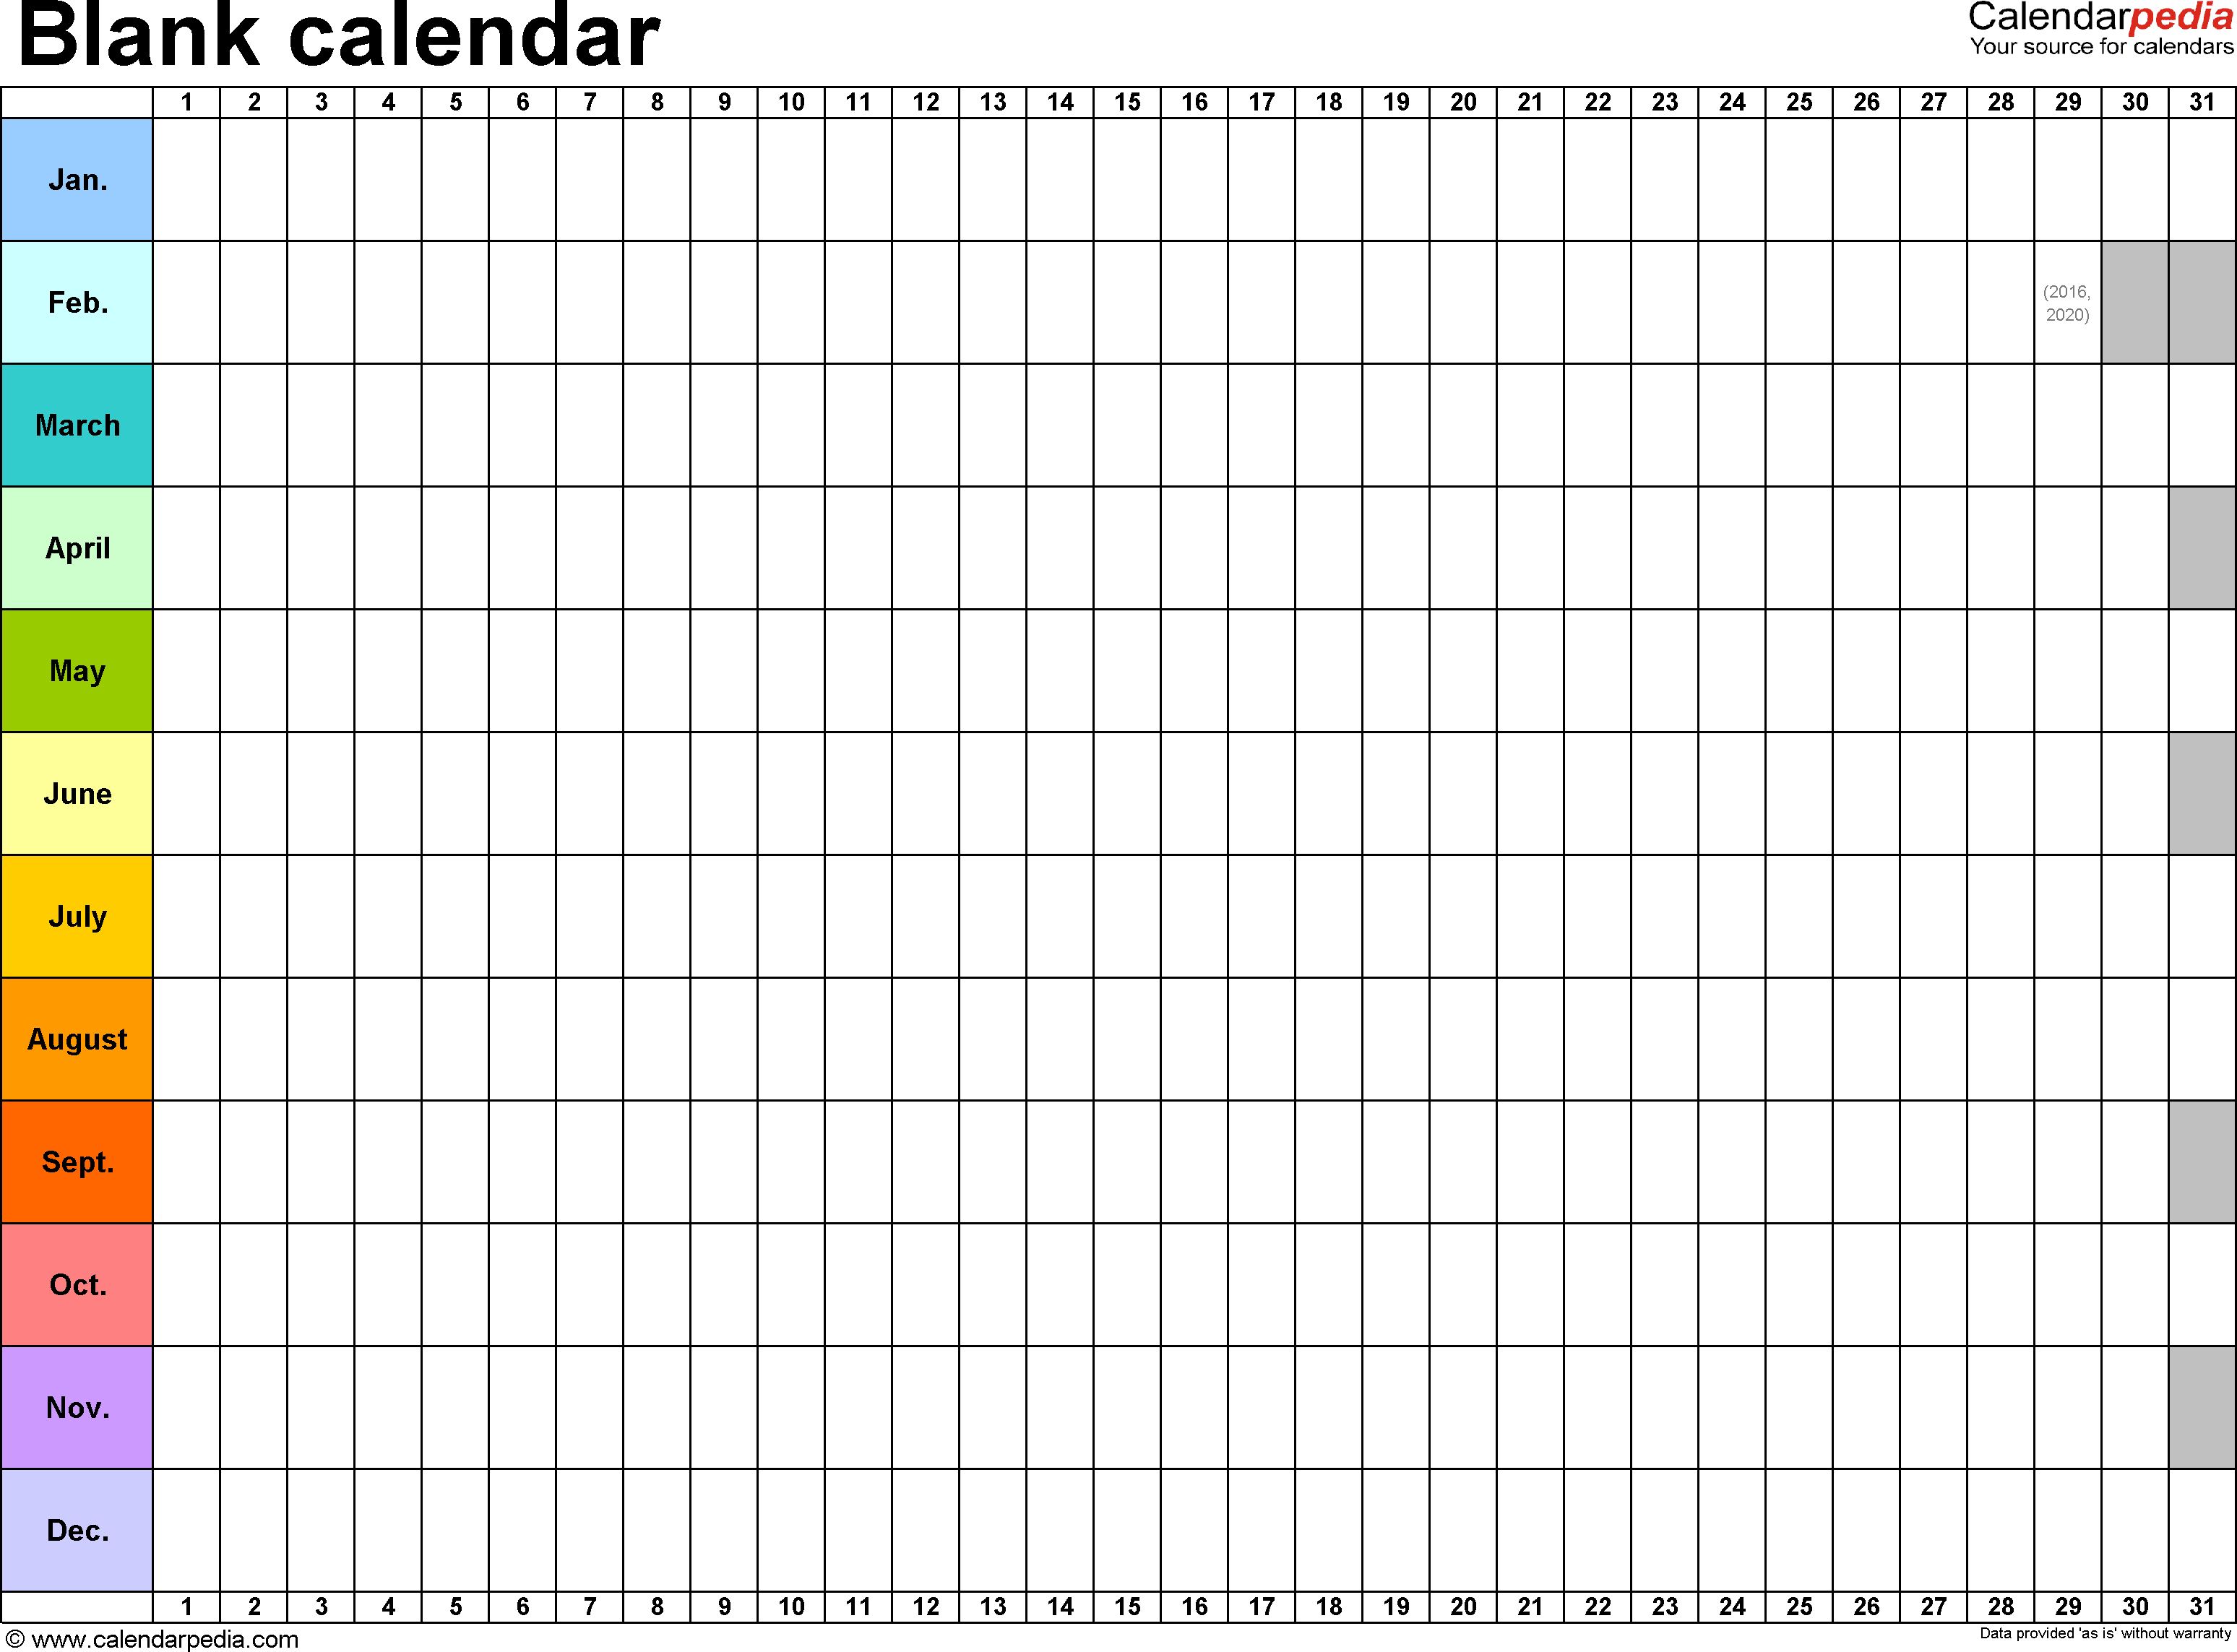 Blank Calendar - 9 Free Printable Microsoft Word Templates intended for Blank Monthly Calendar Sheets